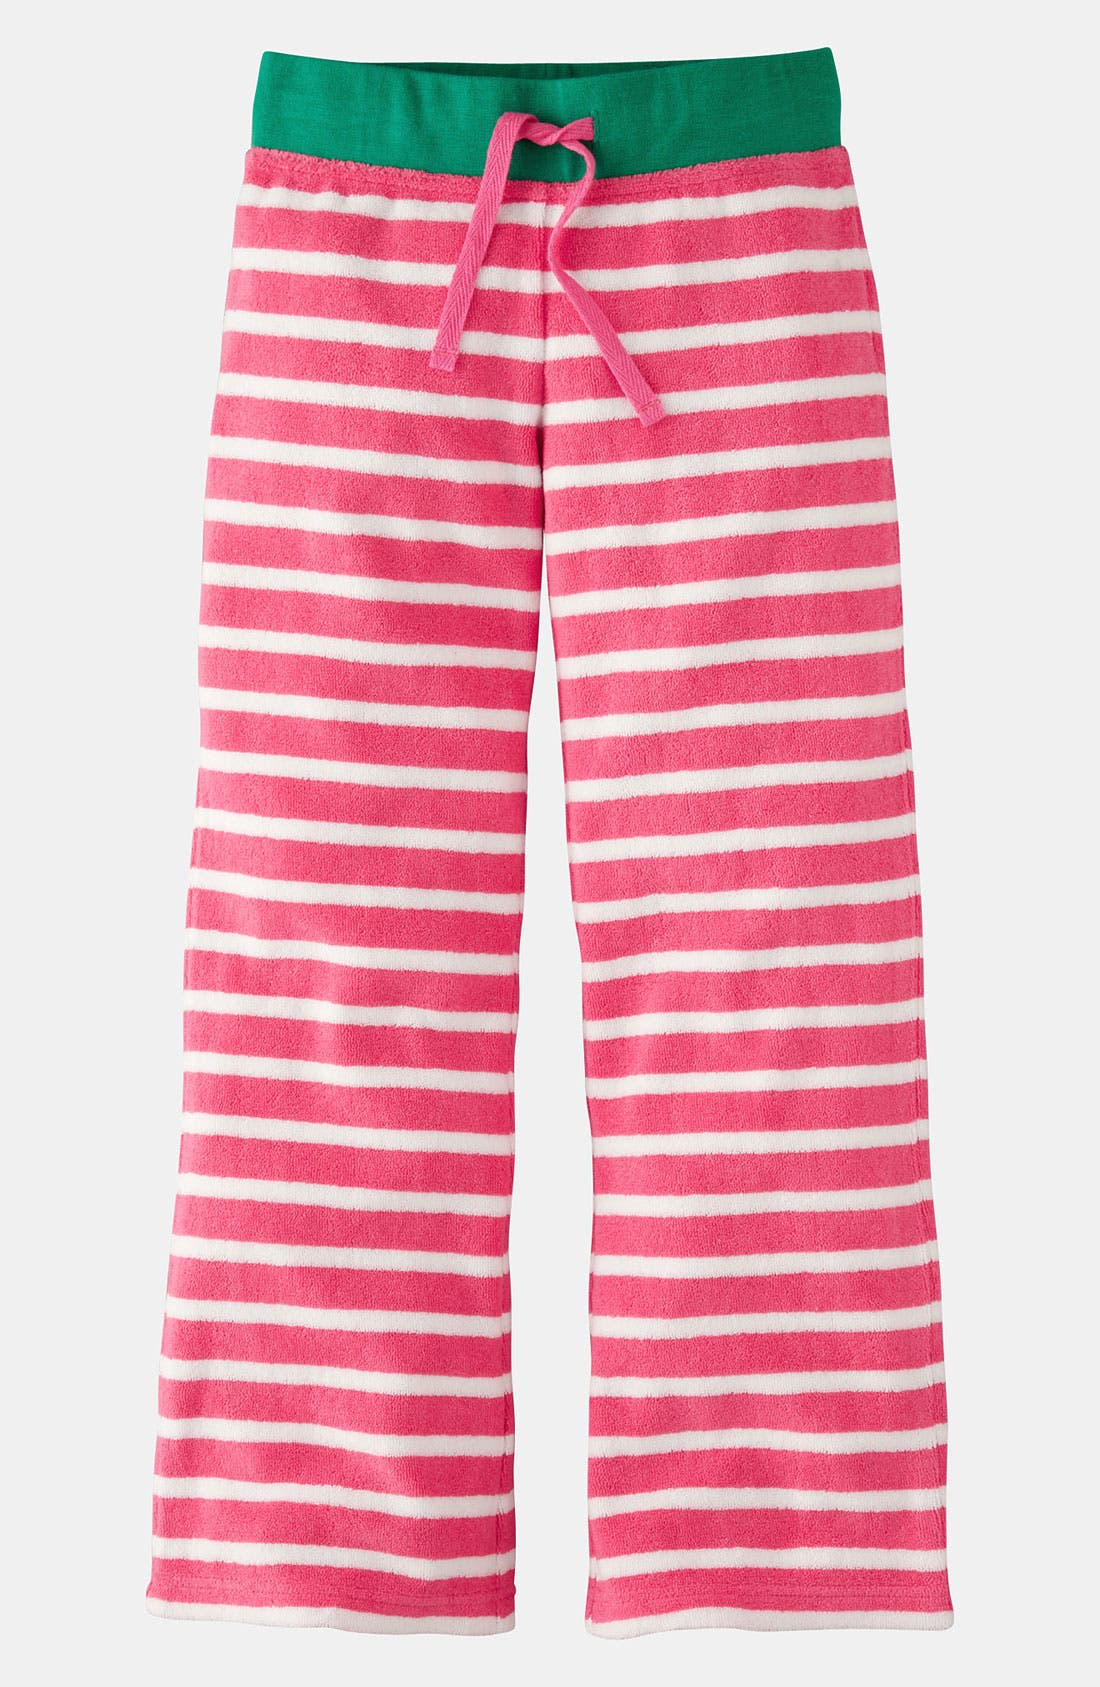 Alternate Image 1 Selected - Mini Boden 'Toweling' Pants (Little Girls & Big Girls)